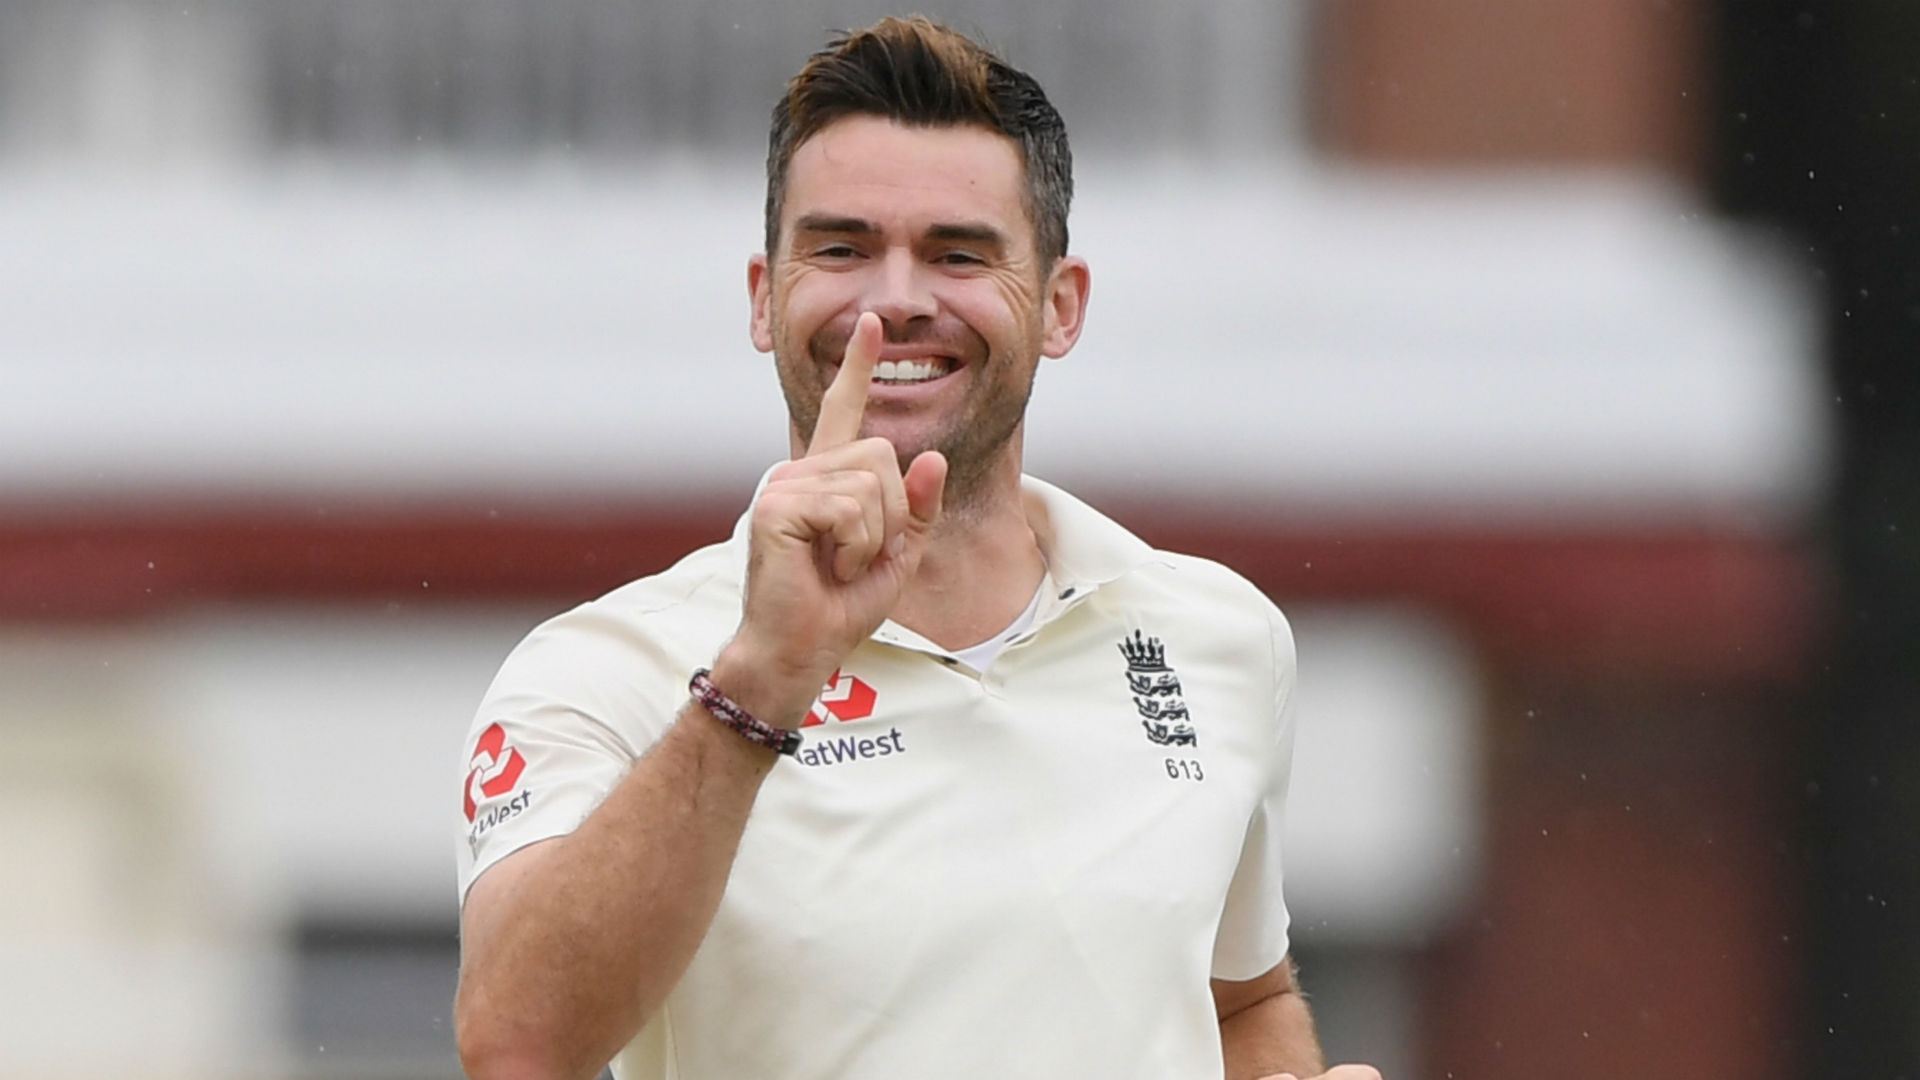 James Anderson on England future: I genuinely don't know if I've peaked yet